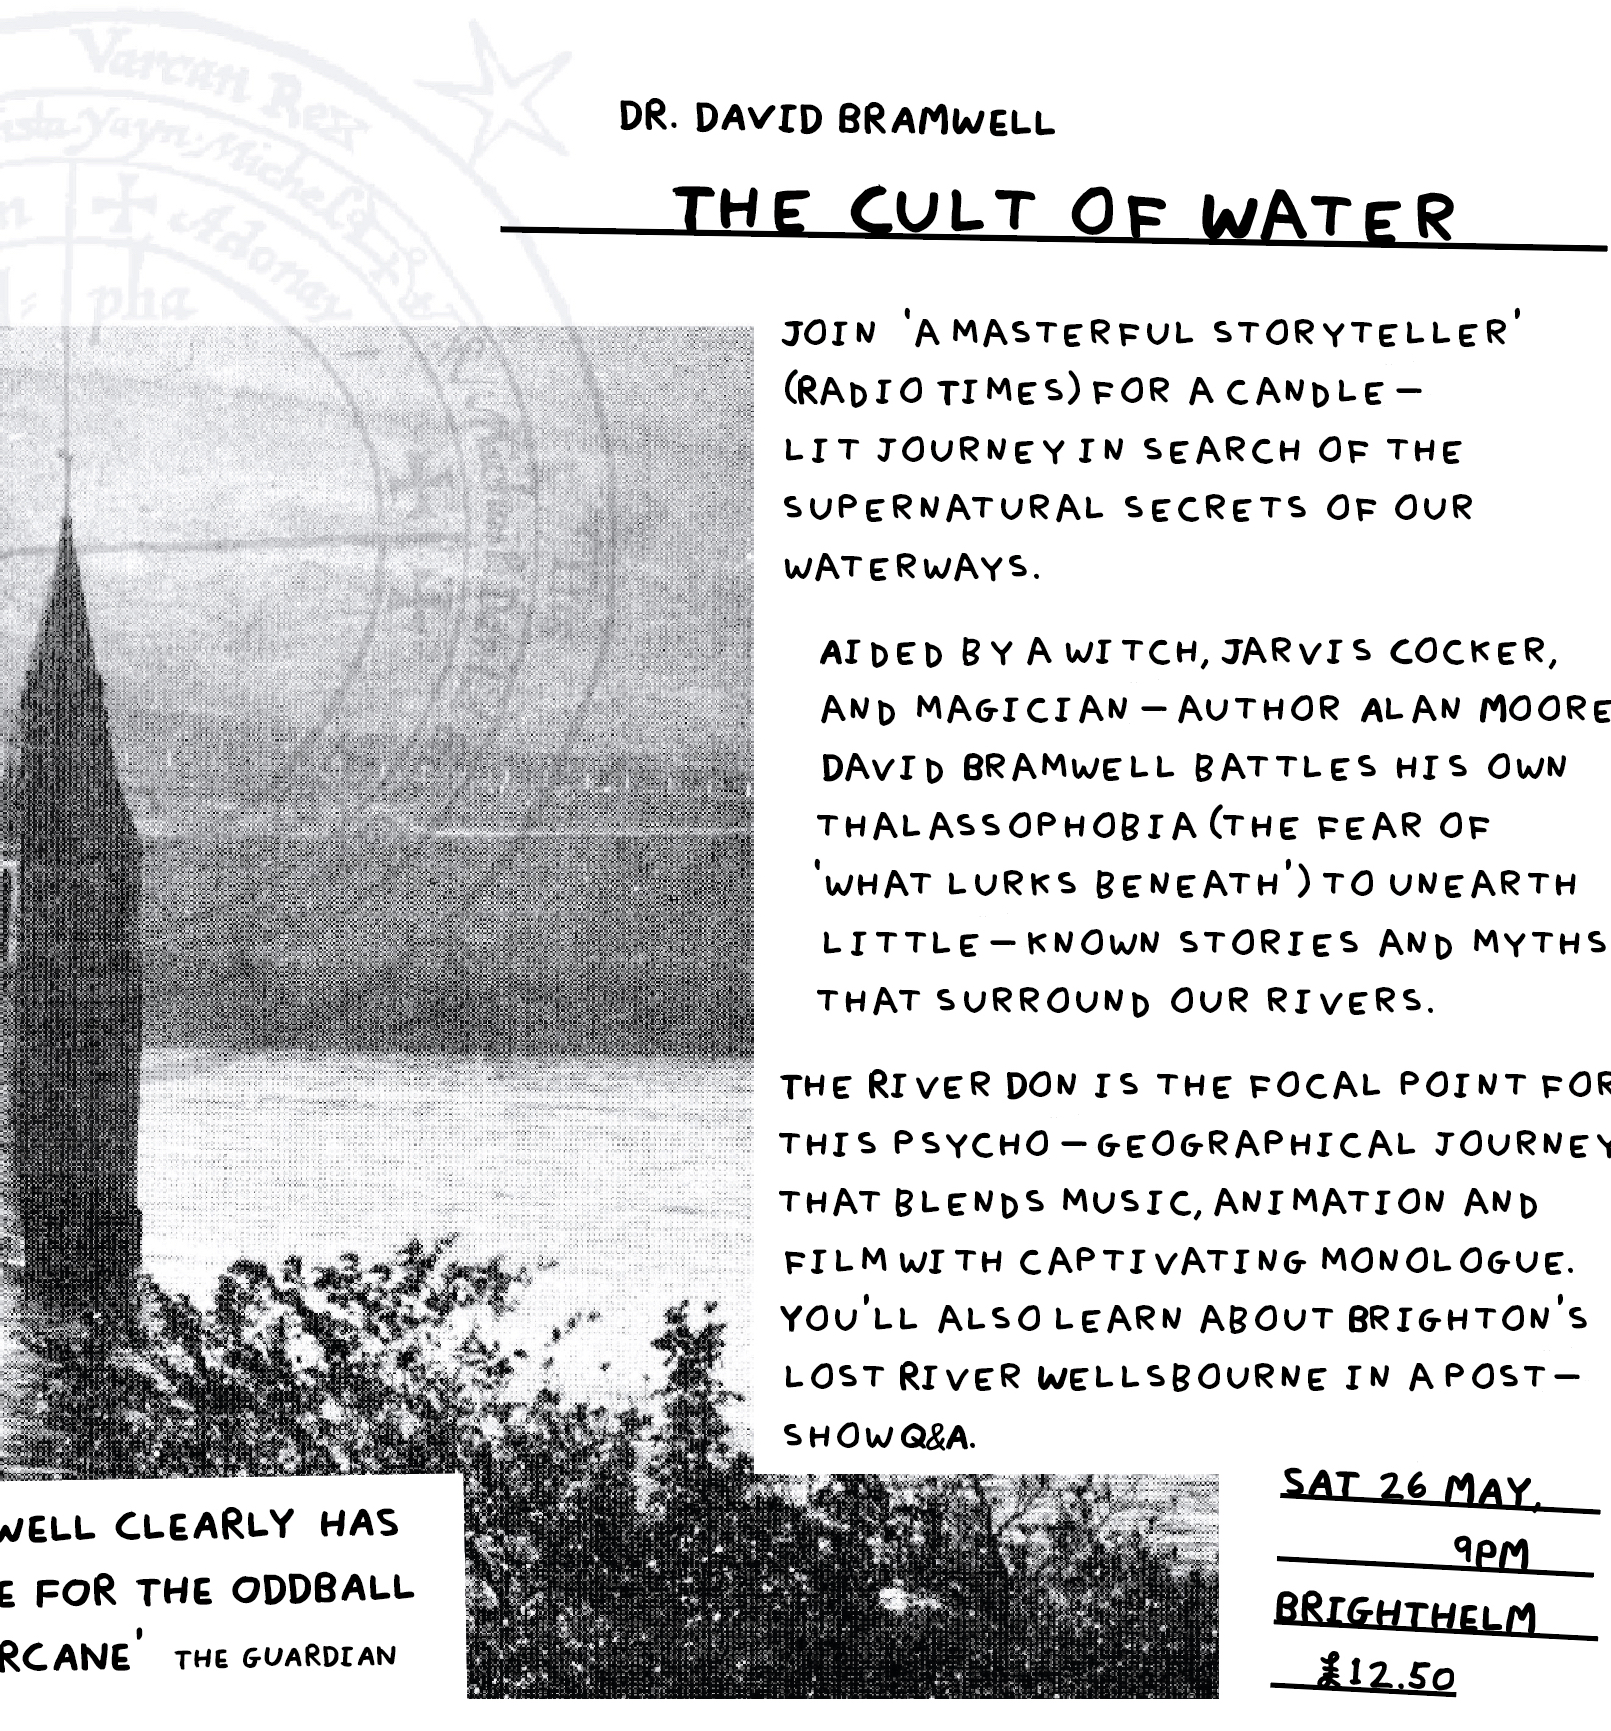 The Cult of Water 22 Jan copy.jpg